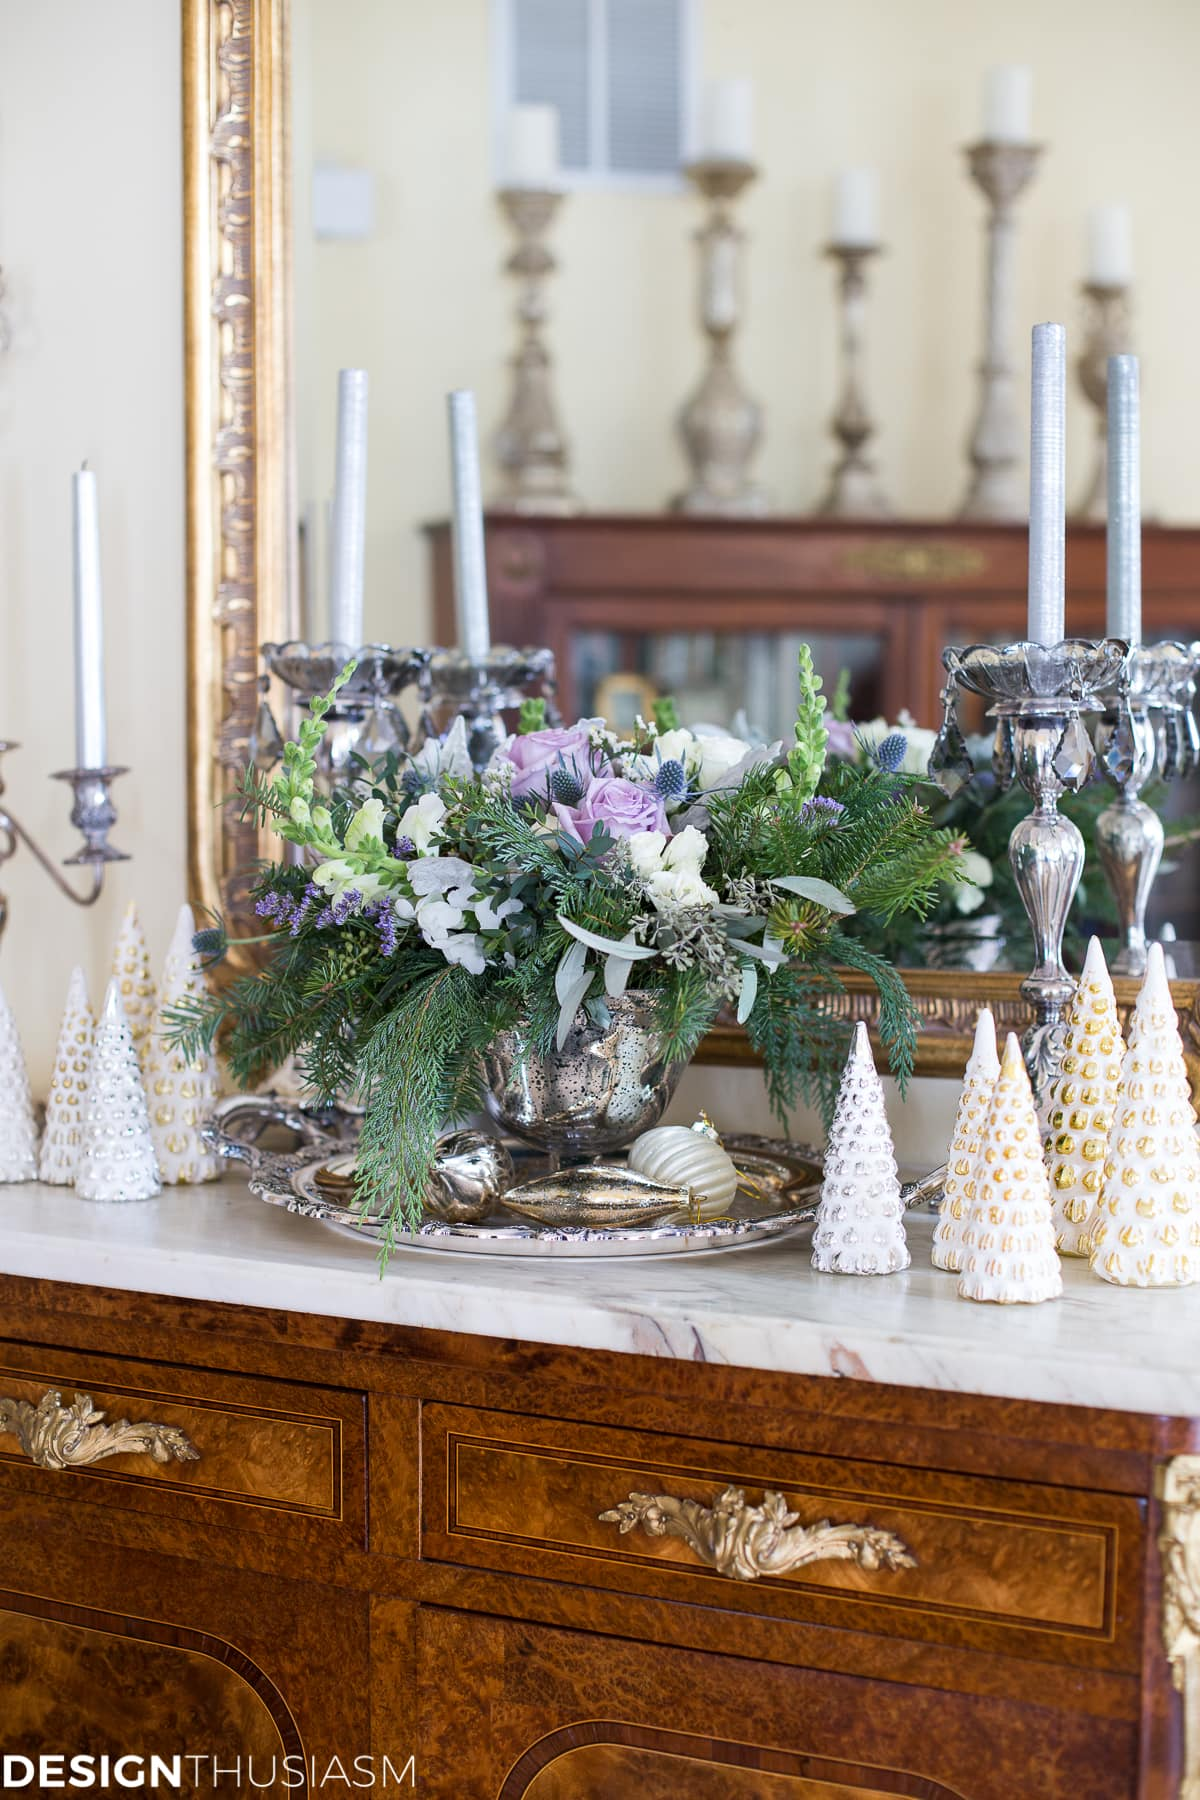 Transitioning to Winter Decor After Christmas